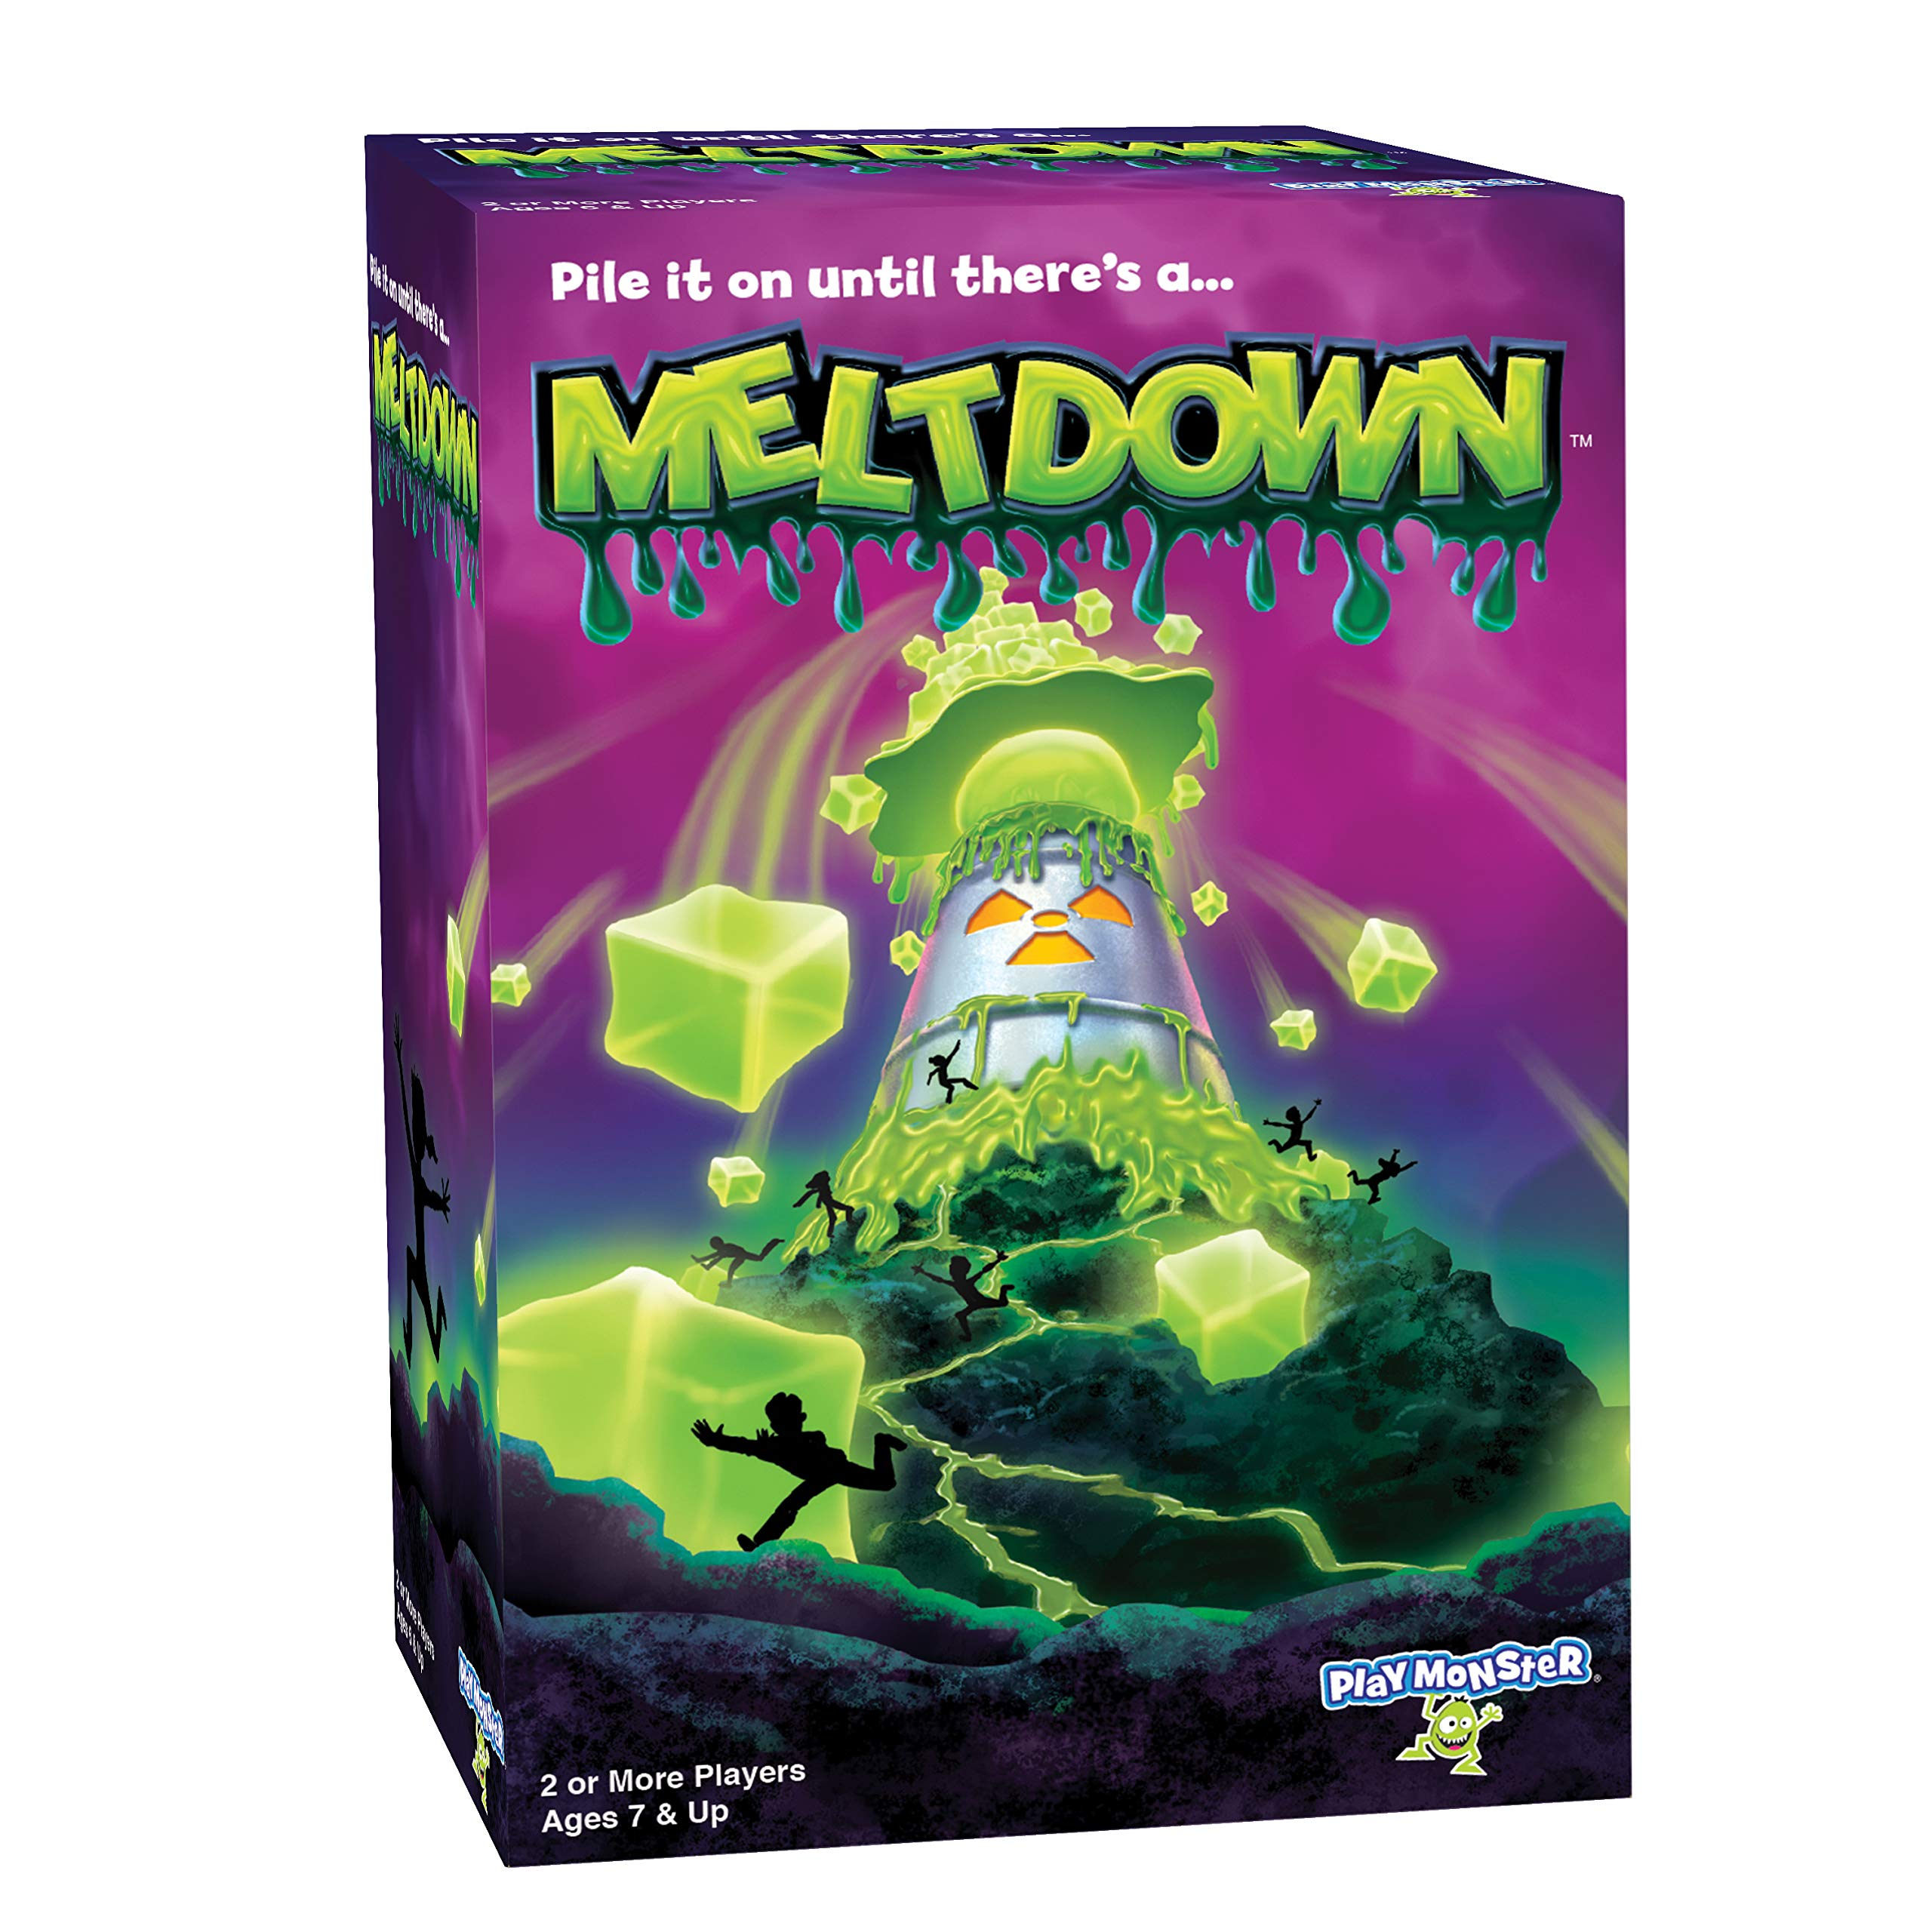 PlayMonster Meltdown Game -- Pile It On Until There's A...Meltdown! by PlayMonster